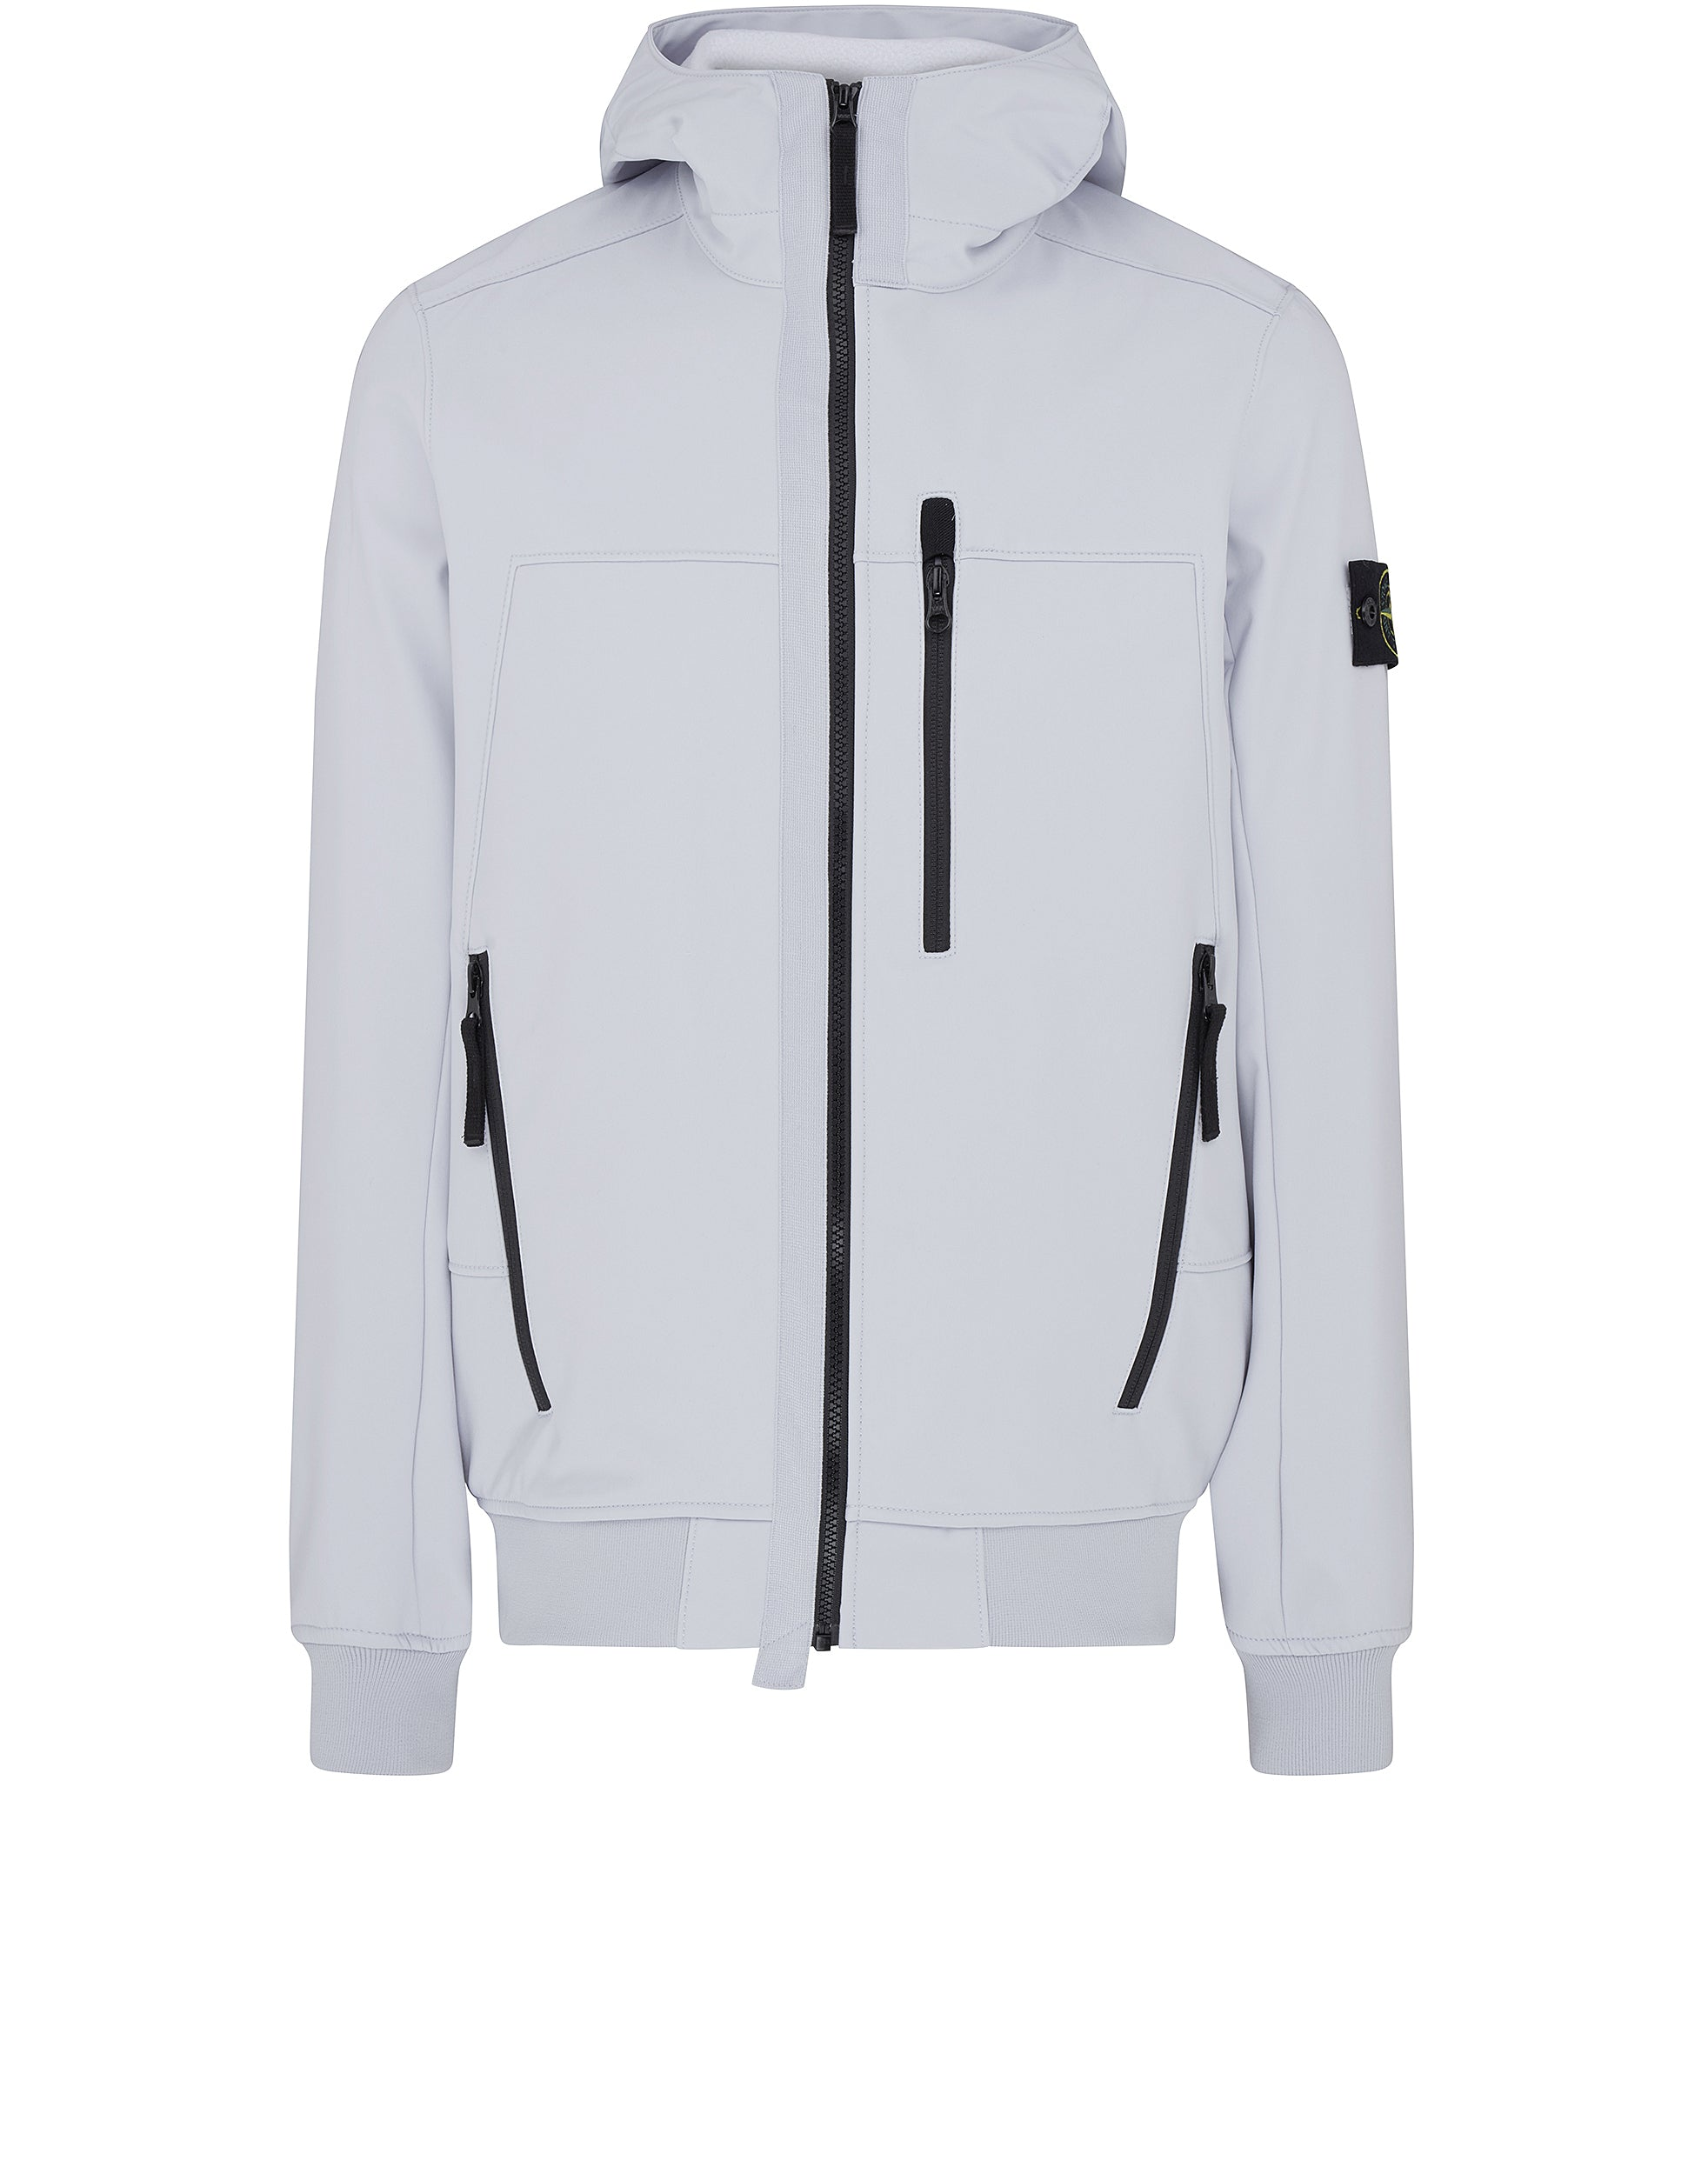 Q0522 SOFT SHELL-R Jacket in Ice